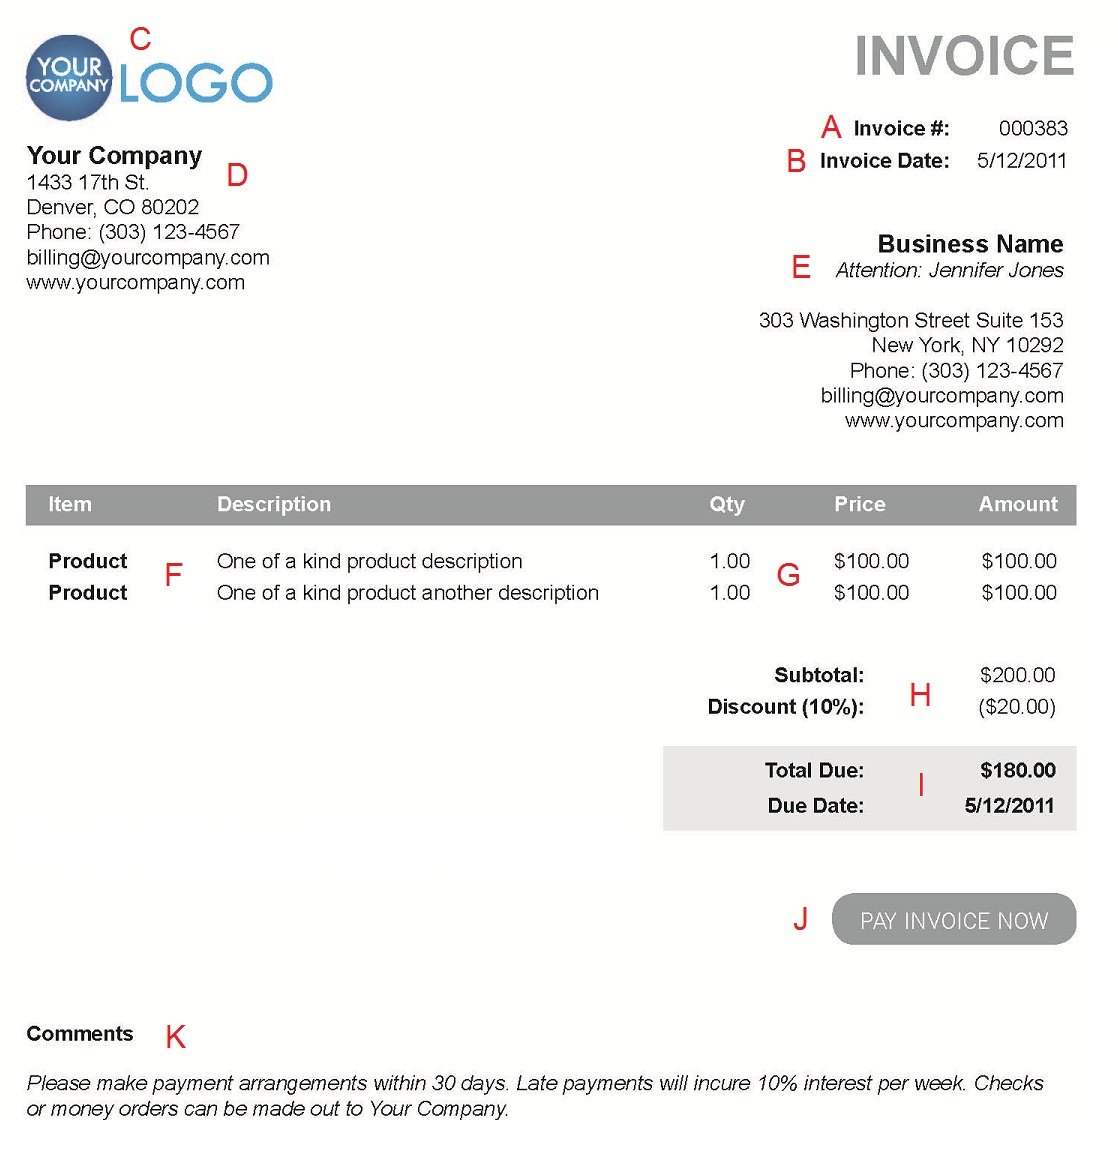 Coolmathgamesus  Outstanding The  Different Sections Of An Electronic Payment Invoice With Foxy A  With Captivating Receipt Folder Organizer Also Request Read Receipt In Gmail In Addition Payment Receipt Confirmation Letter And Square Up Print Receipts As Well As Please Acknowledge Receipt Additionally Nandos Receipt From Paysimplecom With Coolmathgamesus  Foxy The  Different Sections Of An Electronic Payment Invoice With Captivating A  And Outstanding Receipt Folder Organizer Also Request Read Receipt In Gmail In Addition Payment Receipt Confirmation Letter From Paysimplecom